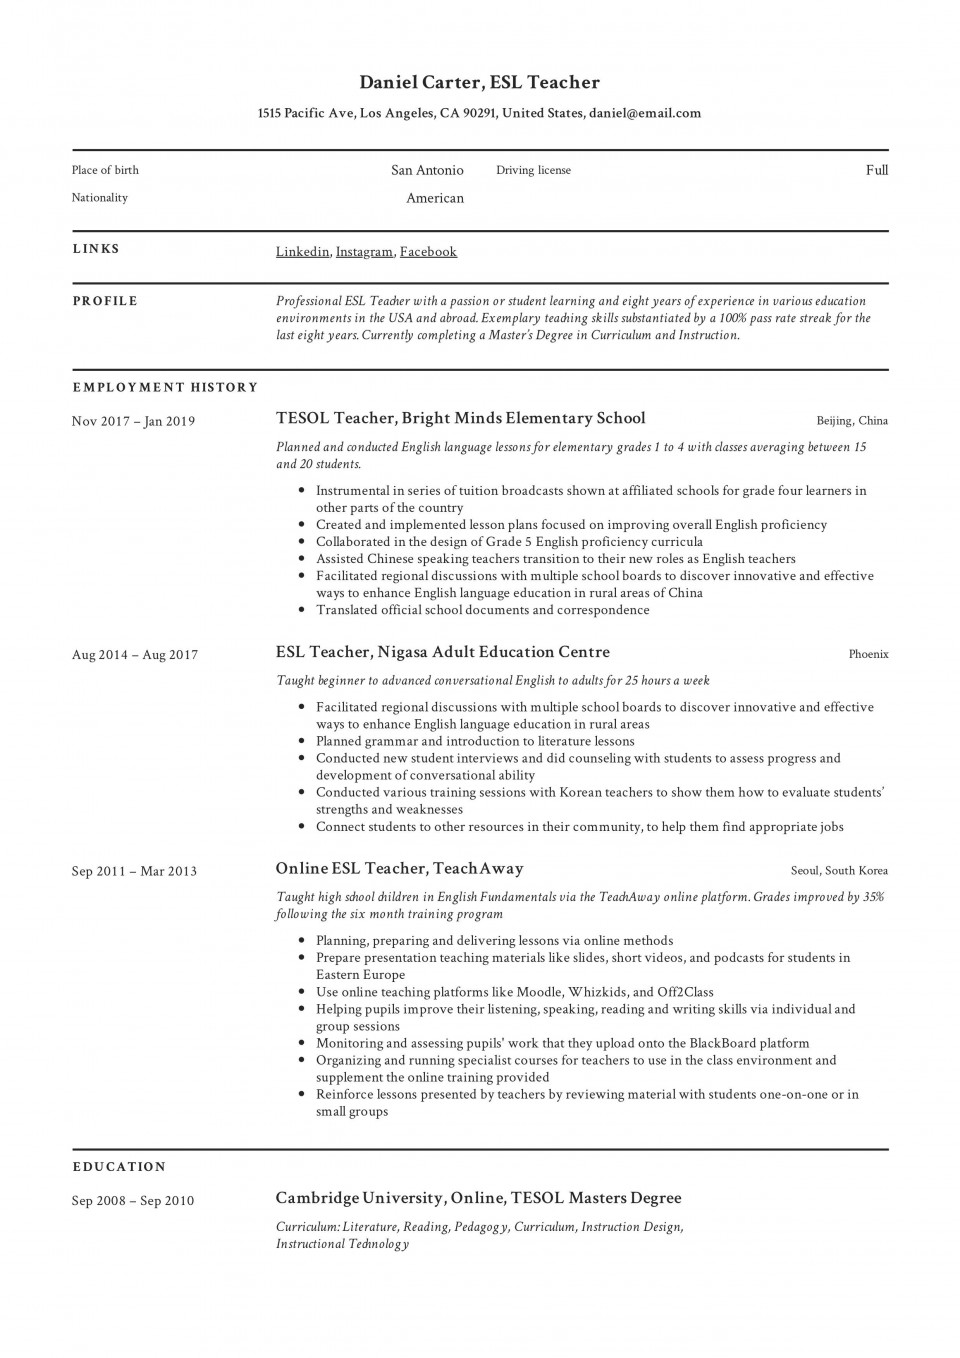 004 Dreaded Good Resume For Teaching Job Image  Sample Teacher Fresher In India960